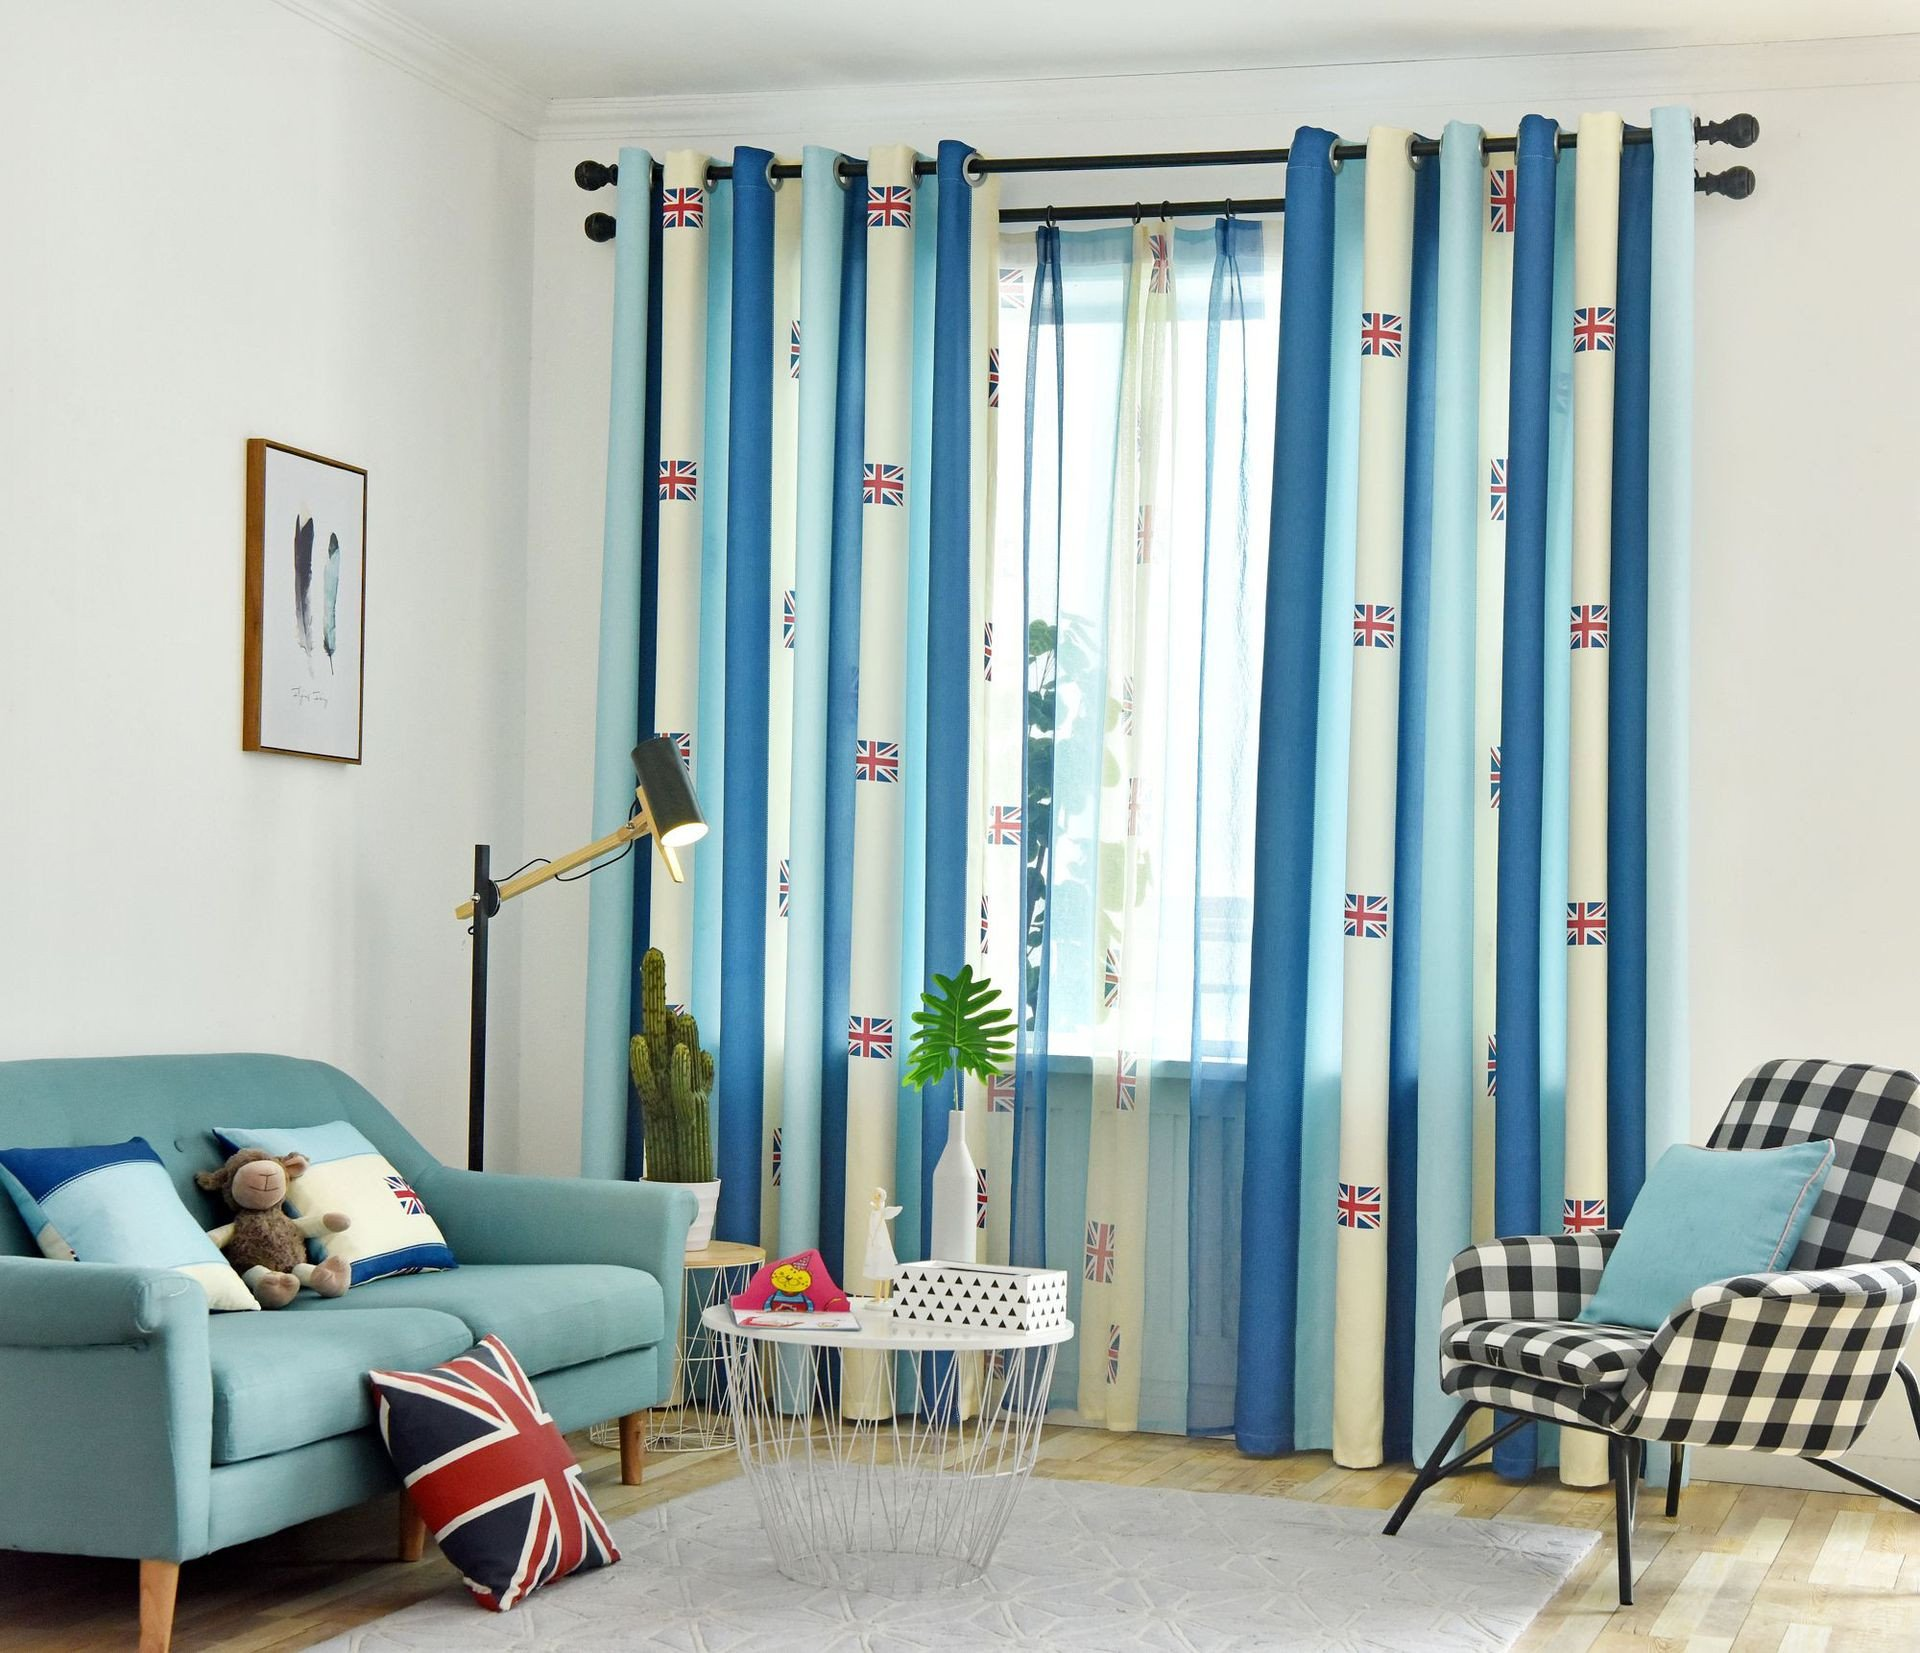 Blue Curtains for Bedroom Awesome 2019 American Style Curtains Blue White Union Flag Window Curtain for Living Room Bedroom Stripe Tulle Sheer for the Kitchen From Curteney $38 25